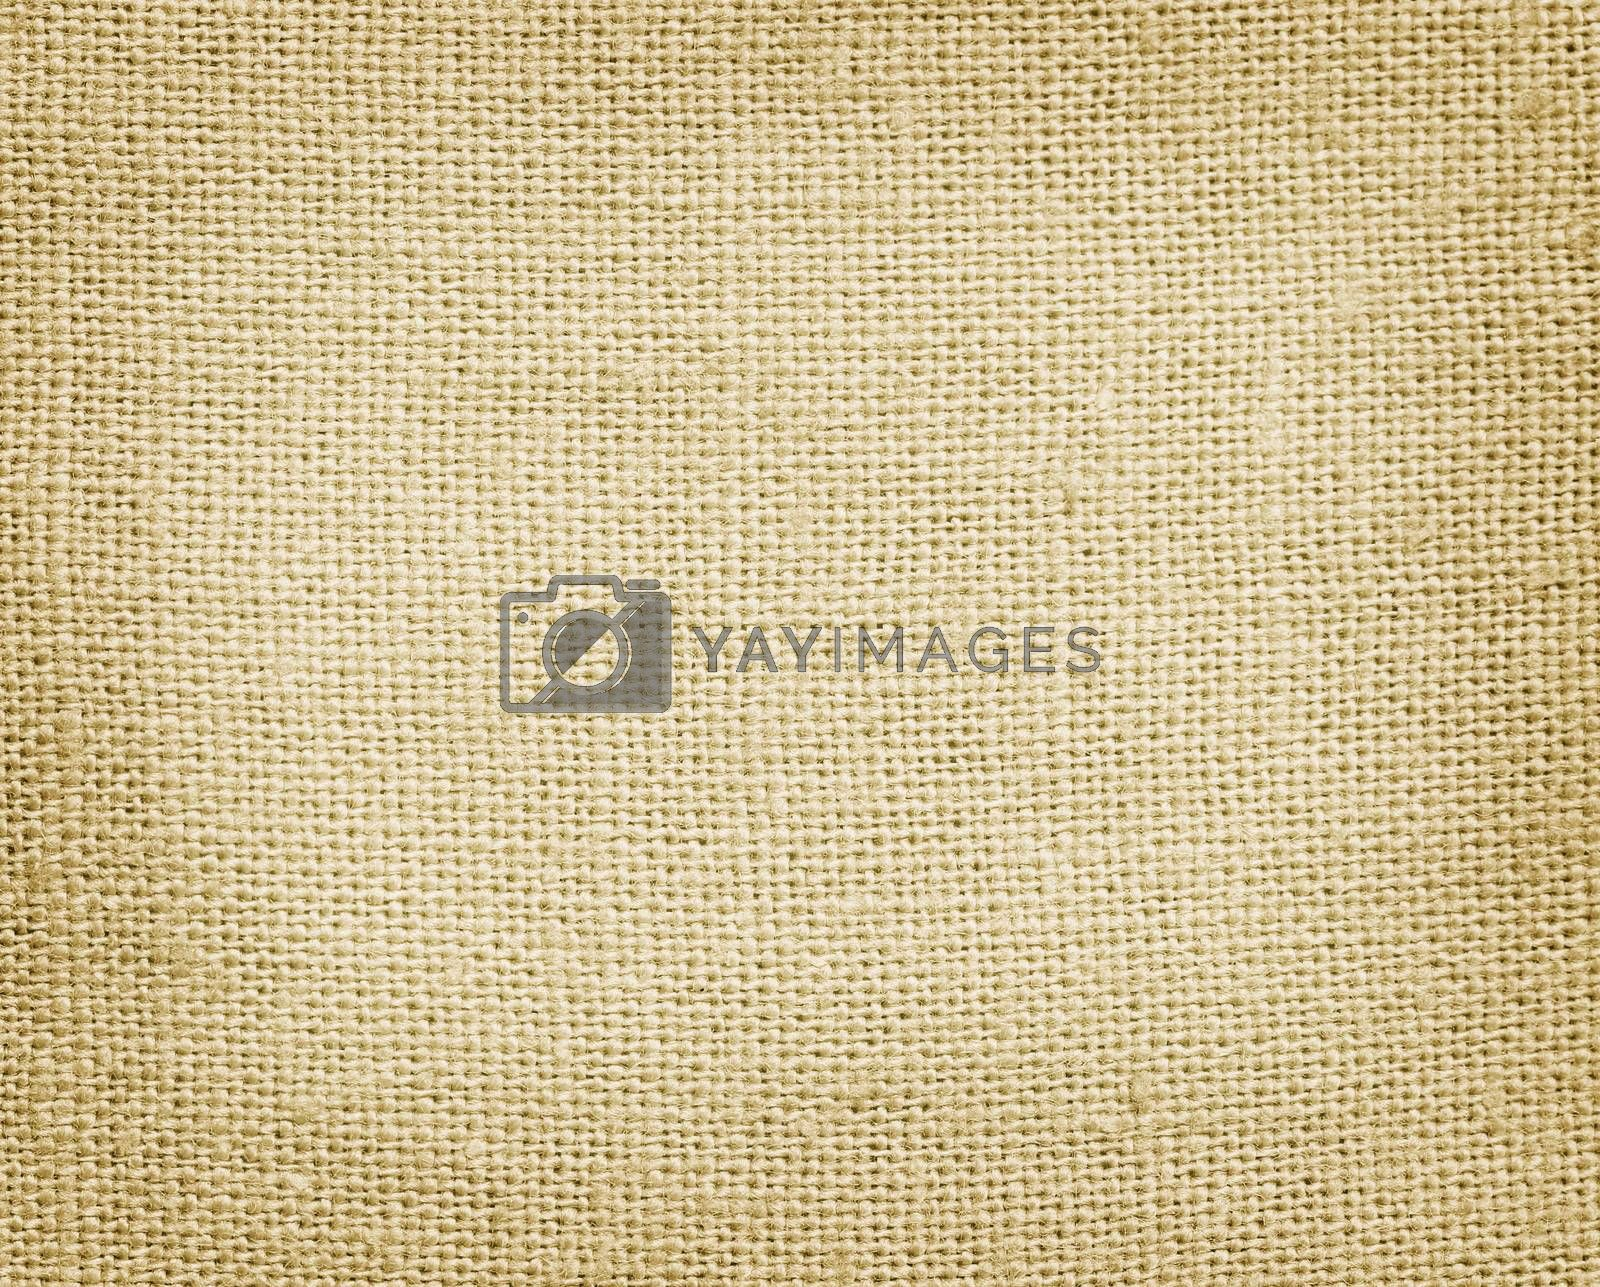 Royalty free image of Burlap texture by vadimmmus